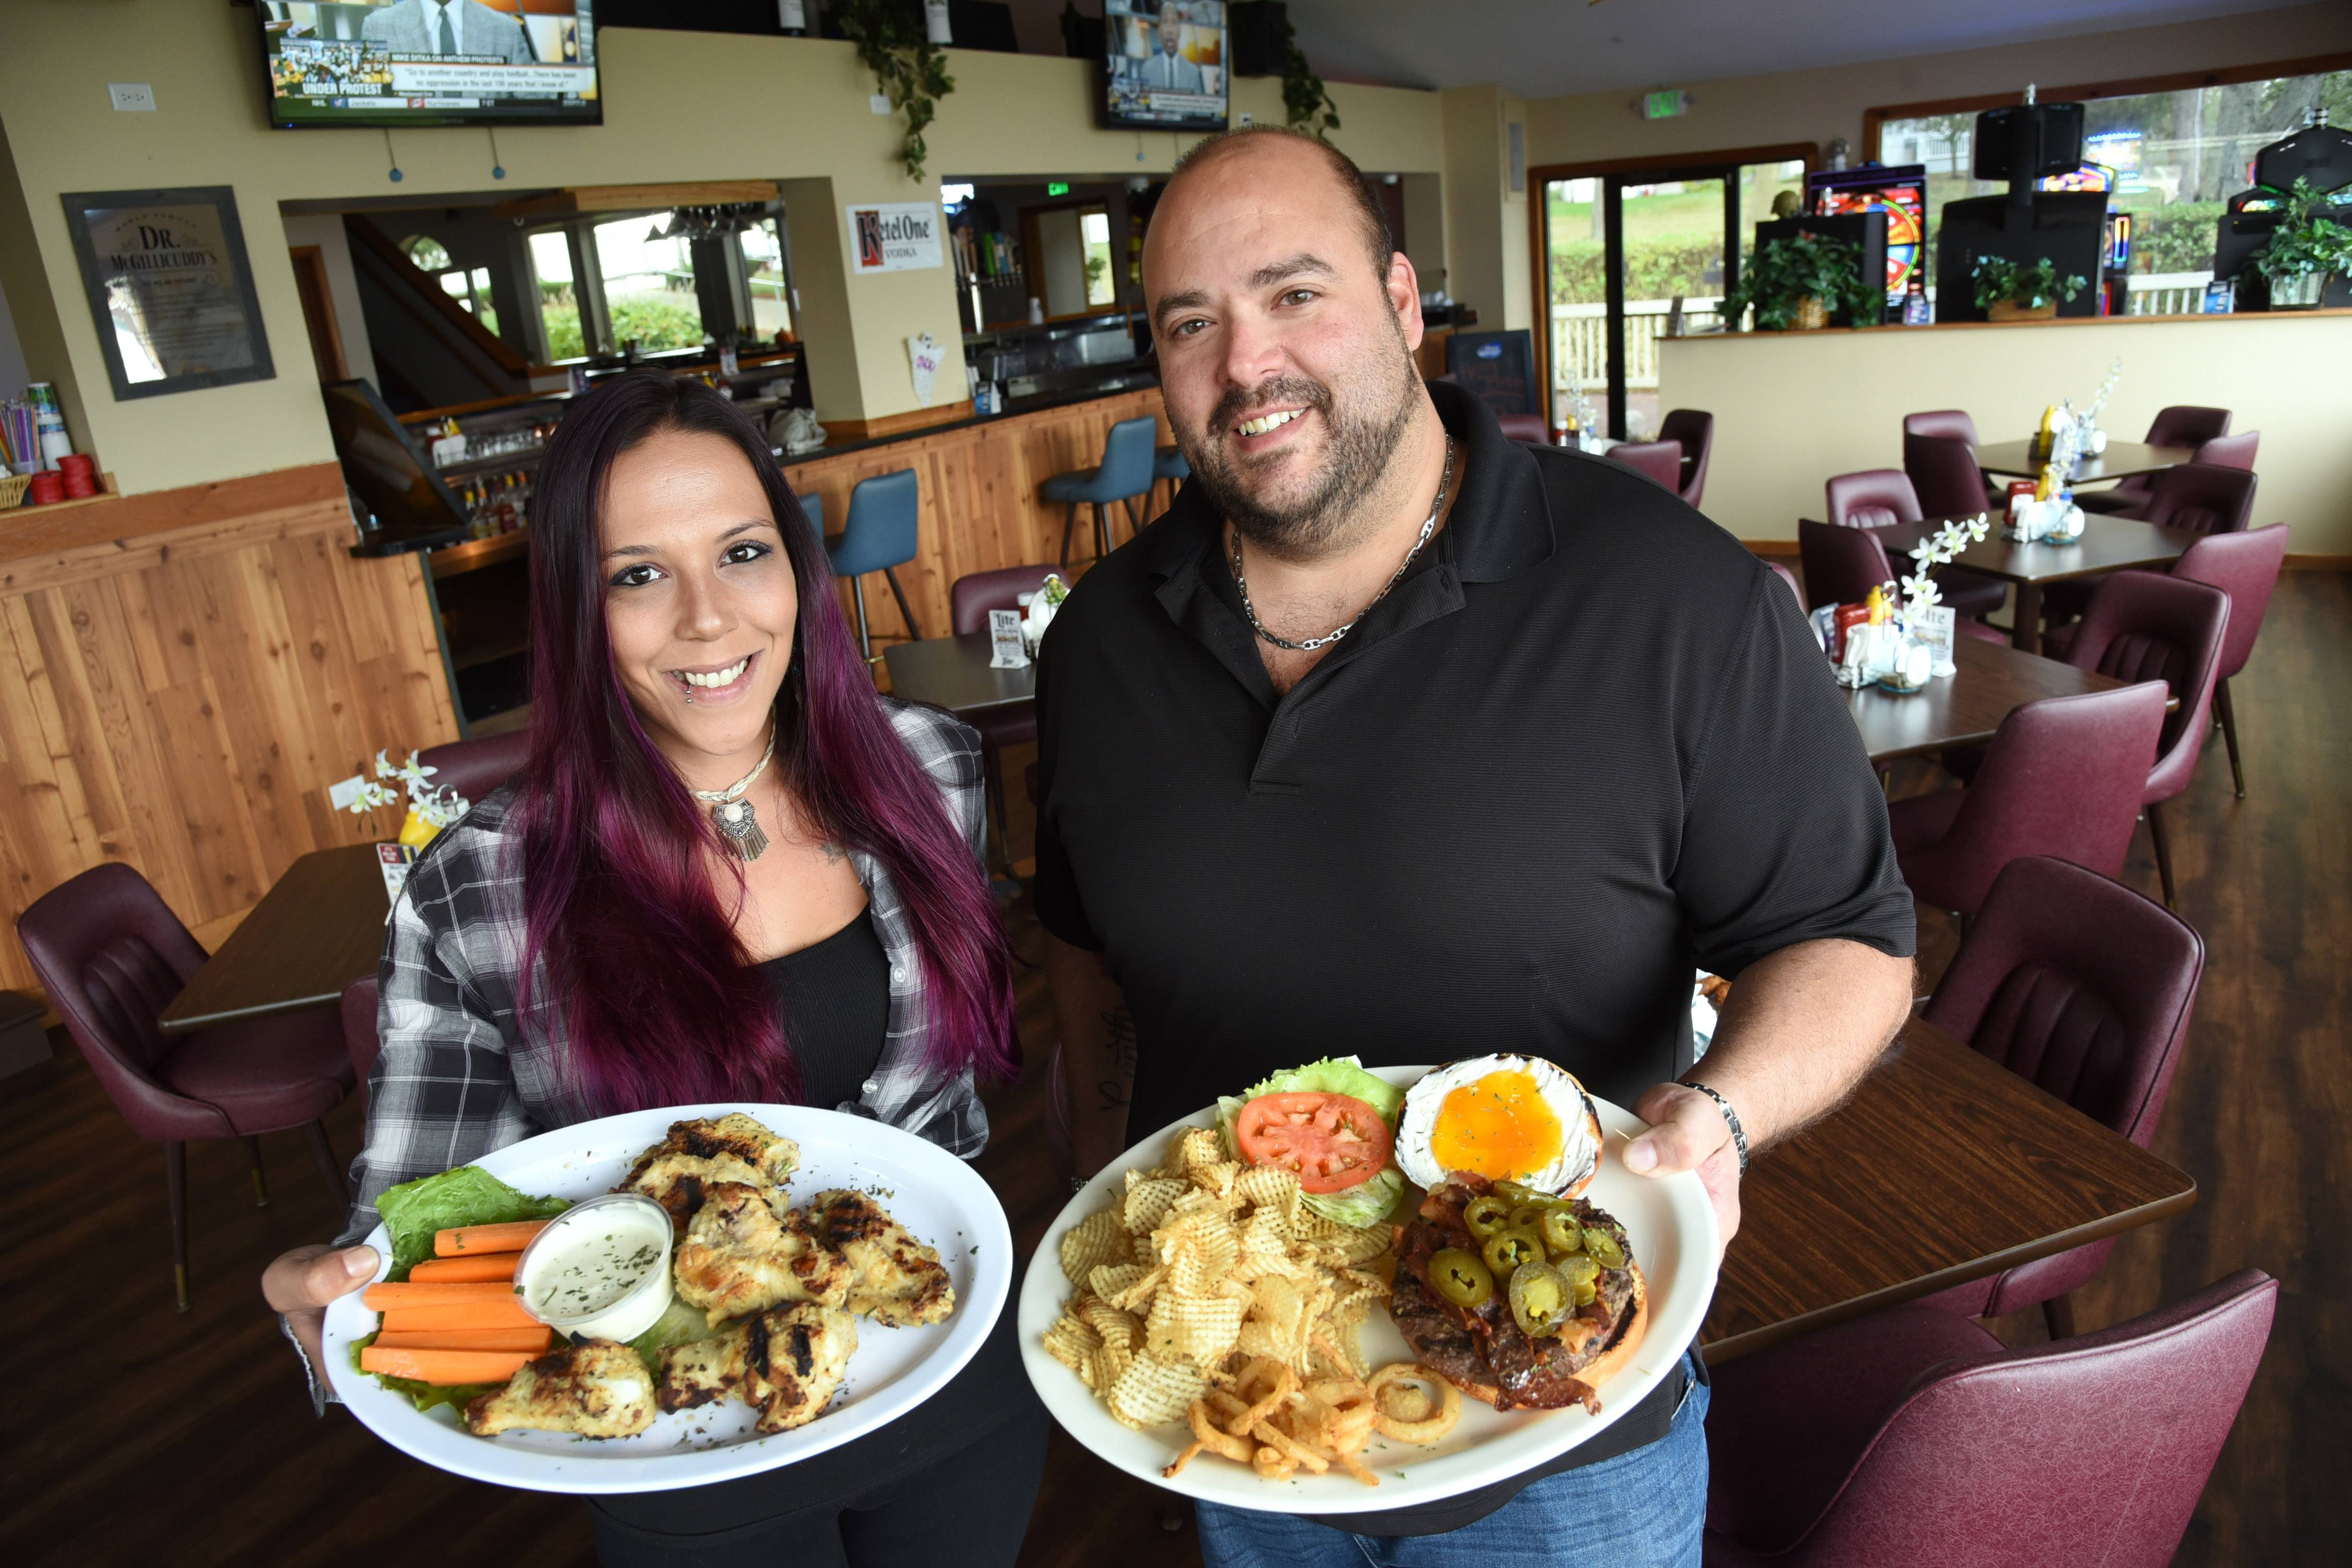 Oasis on Bluff Lake assistant manager/bartender Amanda Cordero, left, shows off a plate of Grecian wings and owner Lou Buccelli touts the Oasis Burger at the Antioch restaurant.